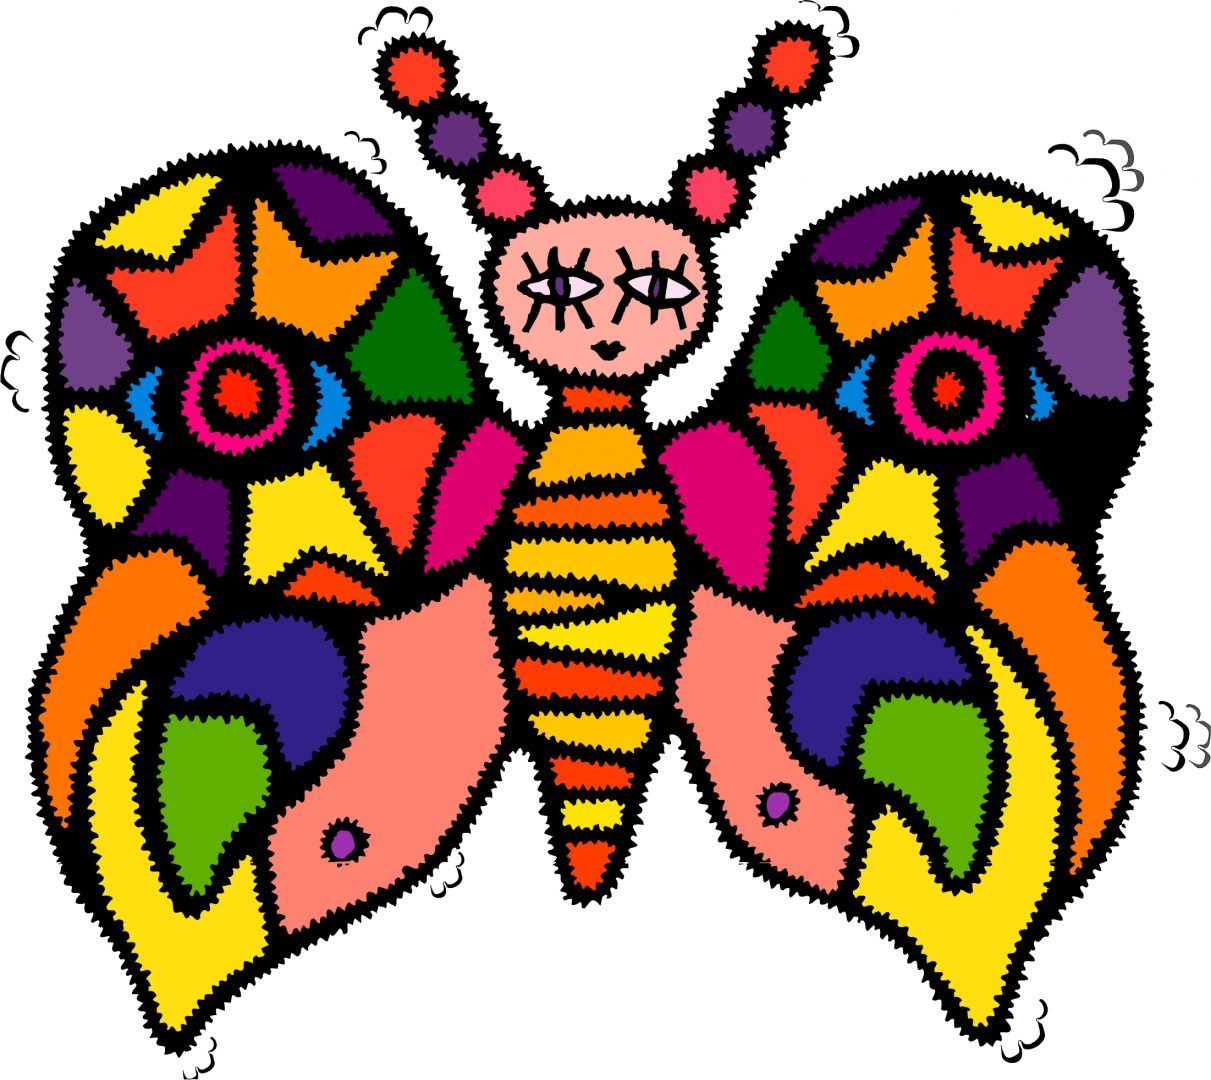 mariposa dating At mariposa we offer assistance with arranging local accommodations for short term stays including hotels and summer residence singles our singles program.